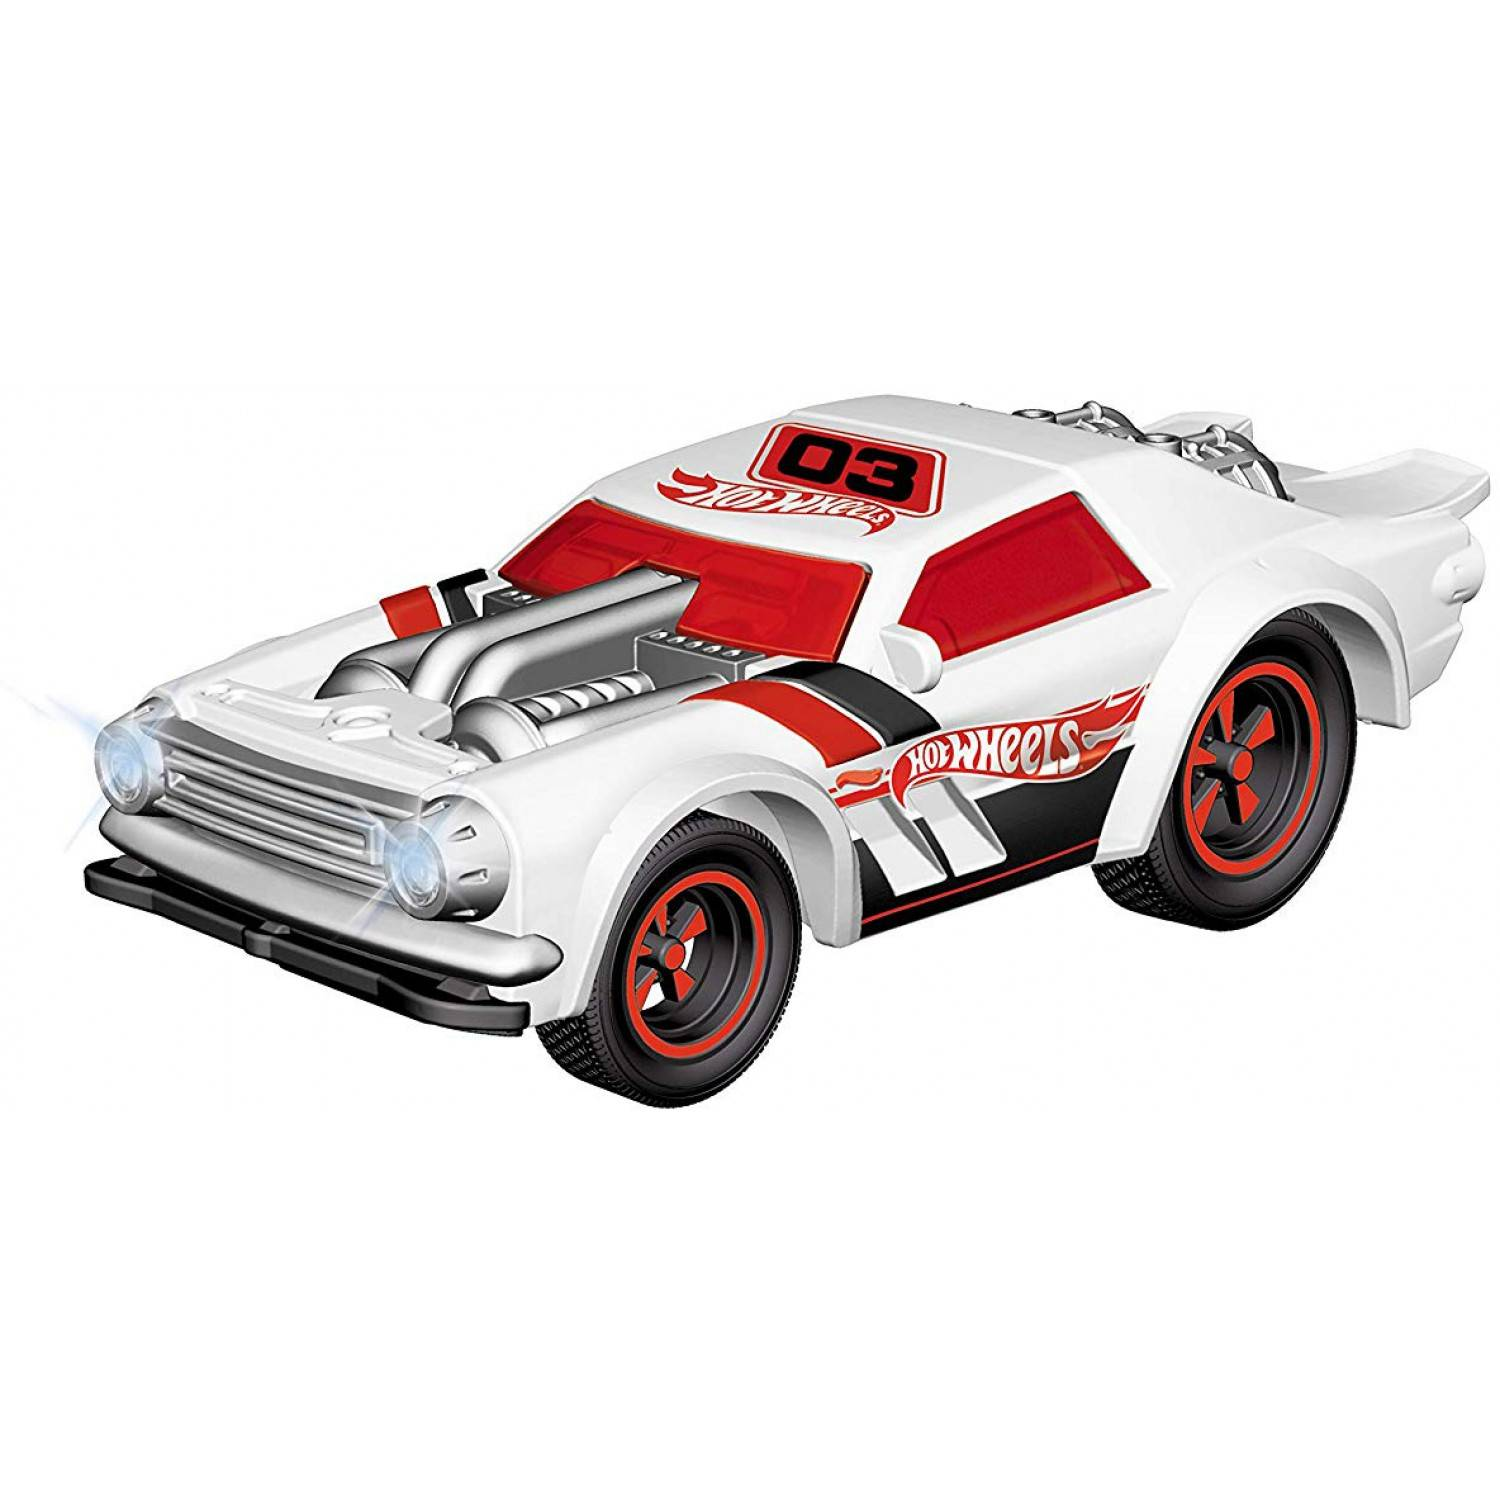 mondo macchinina mondo hot wheels radiocomandata night shifter